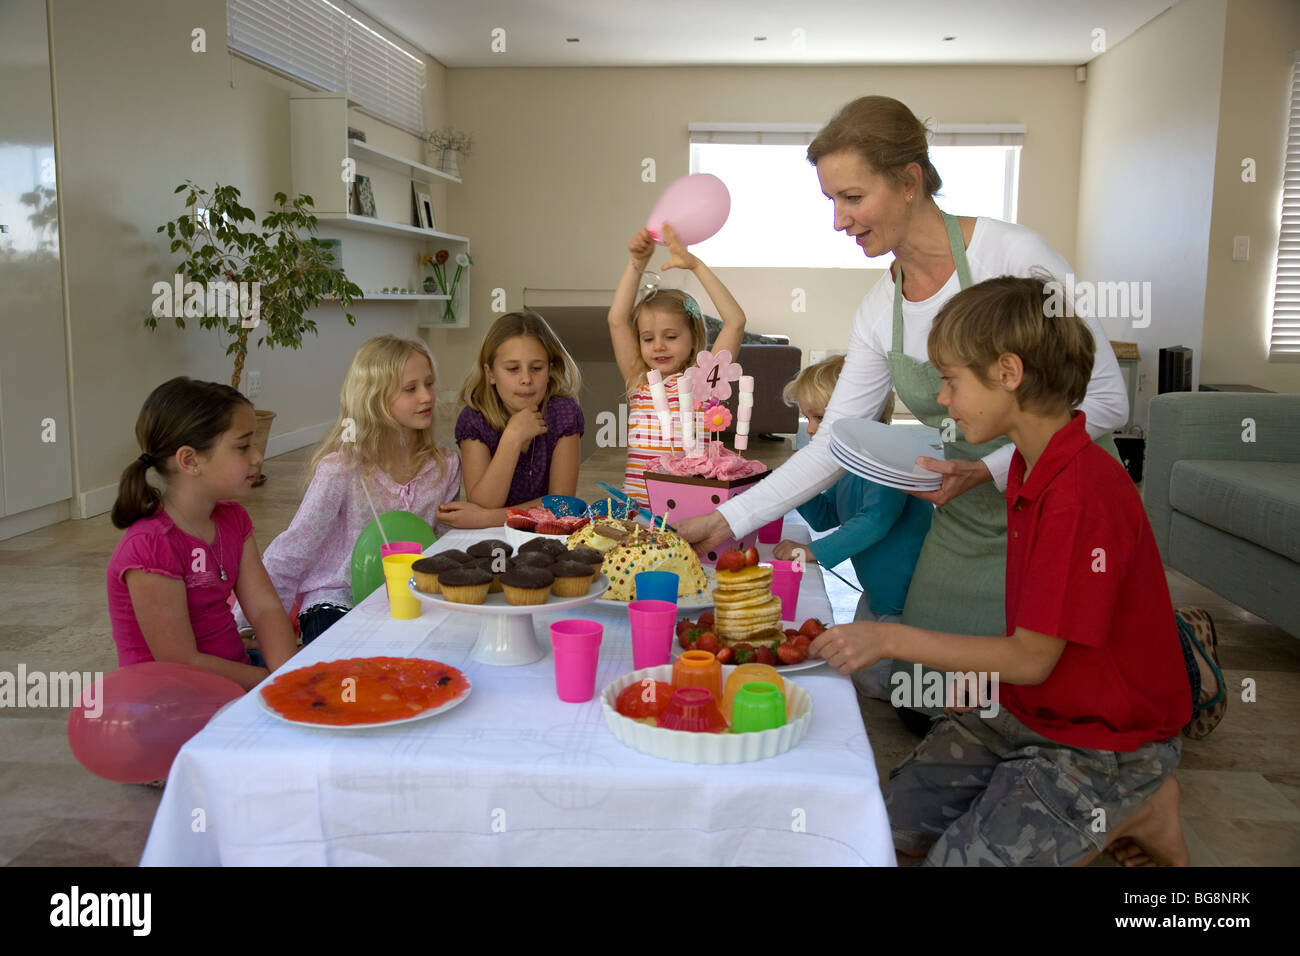 small childrens kids around table with sweets and cakes - Small Childrens Images